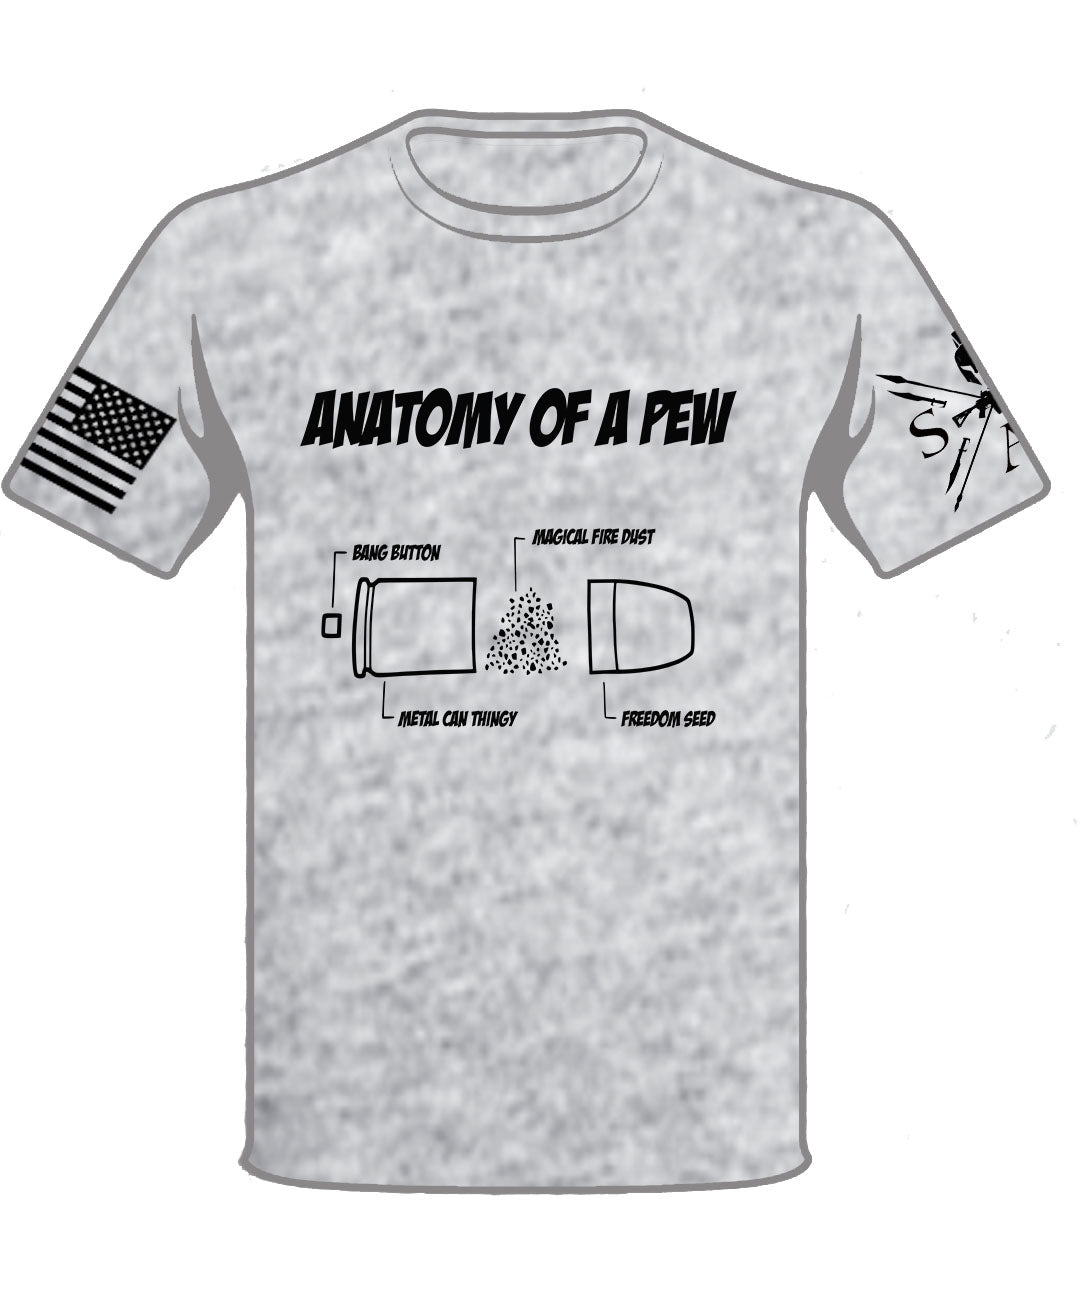 Anatomy of a Pew T-Shirt – Savage AF Clothing